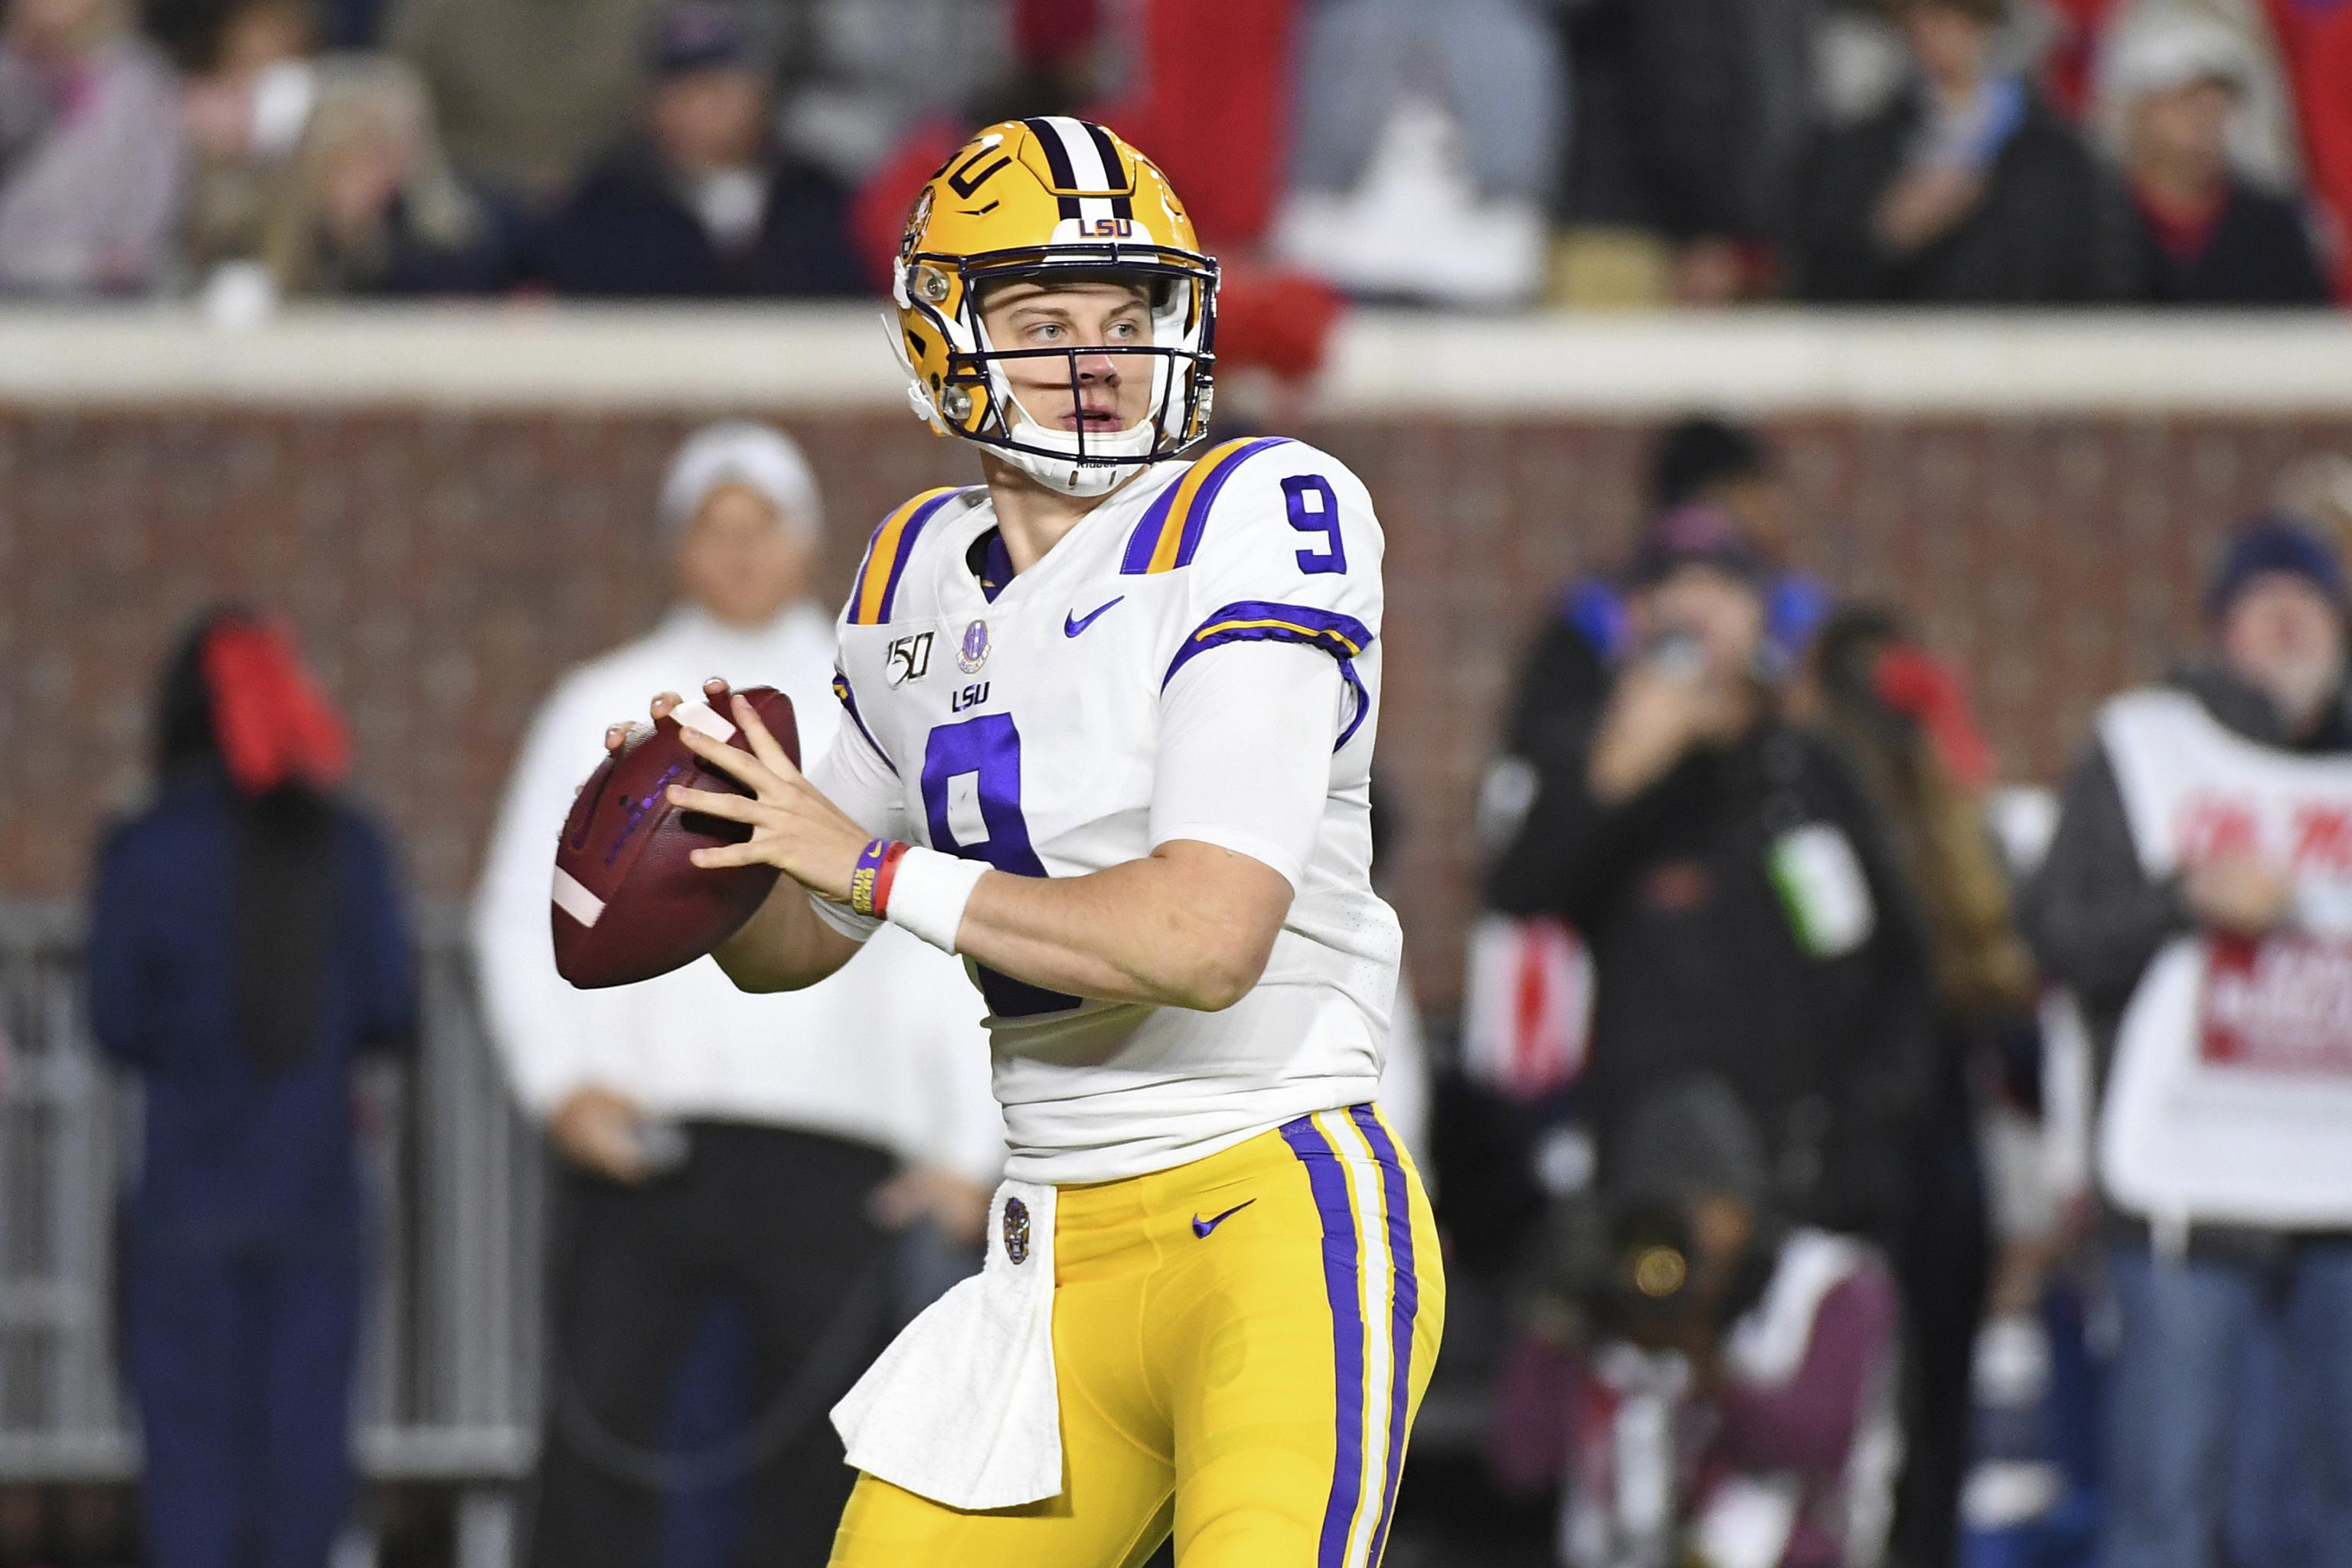 Bowl Games 2019 20 Schedule Tv Info And Predictions For All Games Bleacher Report Latest News Videos And Highlights